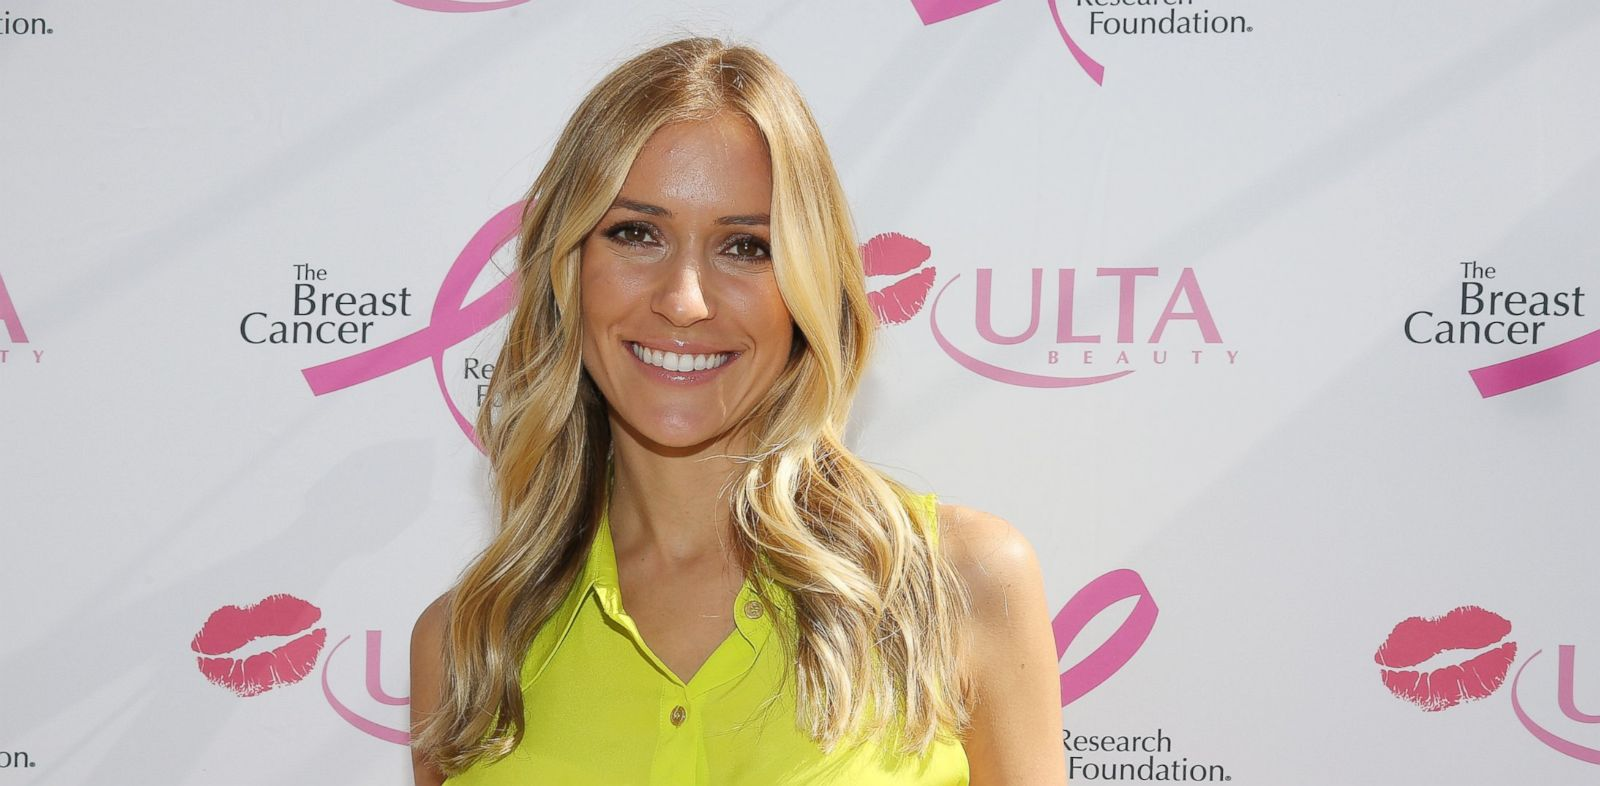 PHOTO: Kristin Cavallari stops by ULTA Beautys Kiss Kart to support the Breast Cancer Research Foundation at Pioneer Court, Oct. 10, 2013 in Chicago.